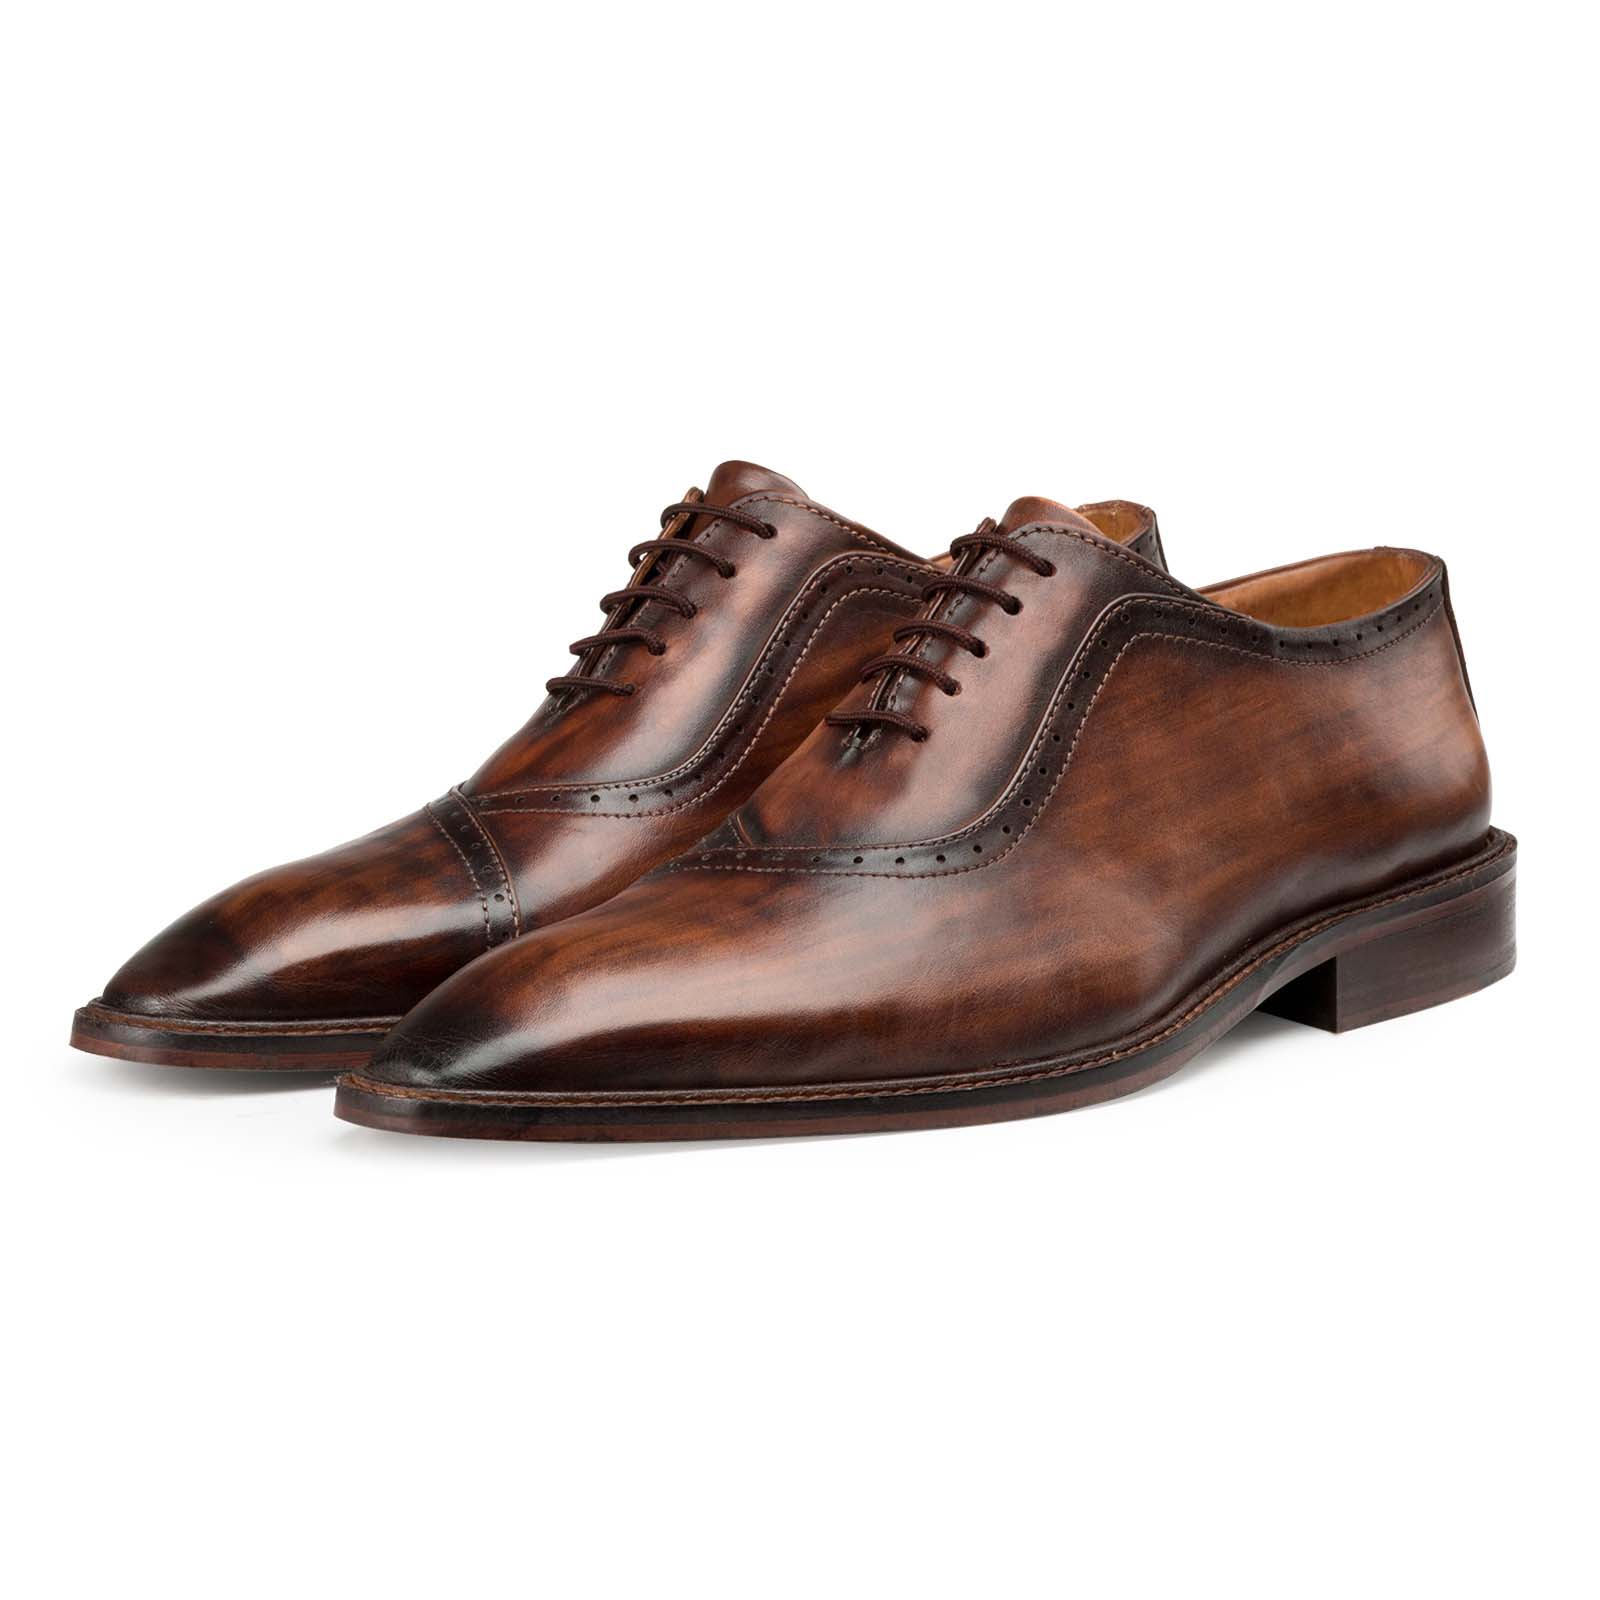 Wooden-Finish Brown Oxford